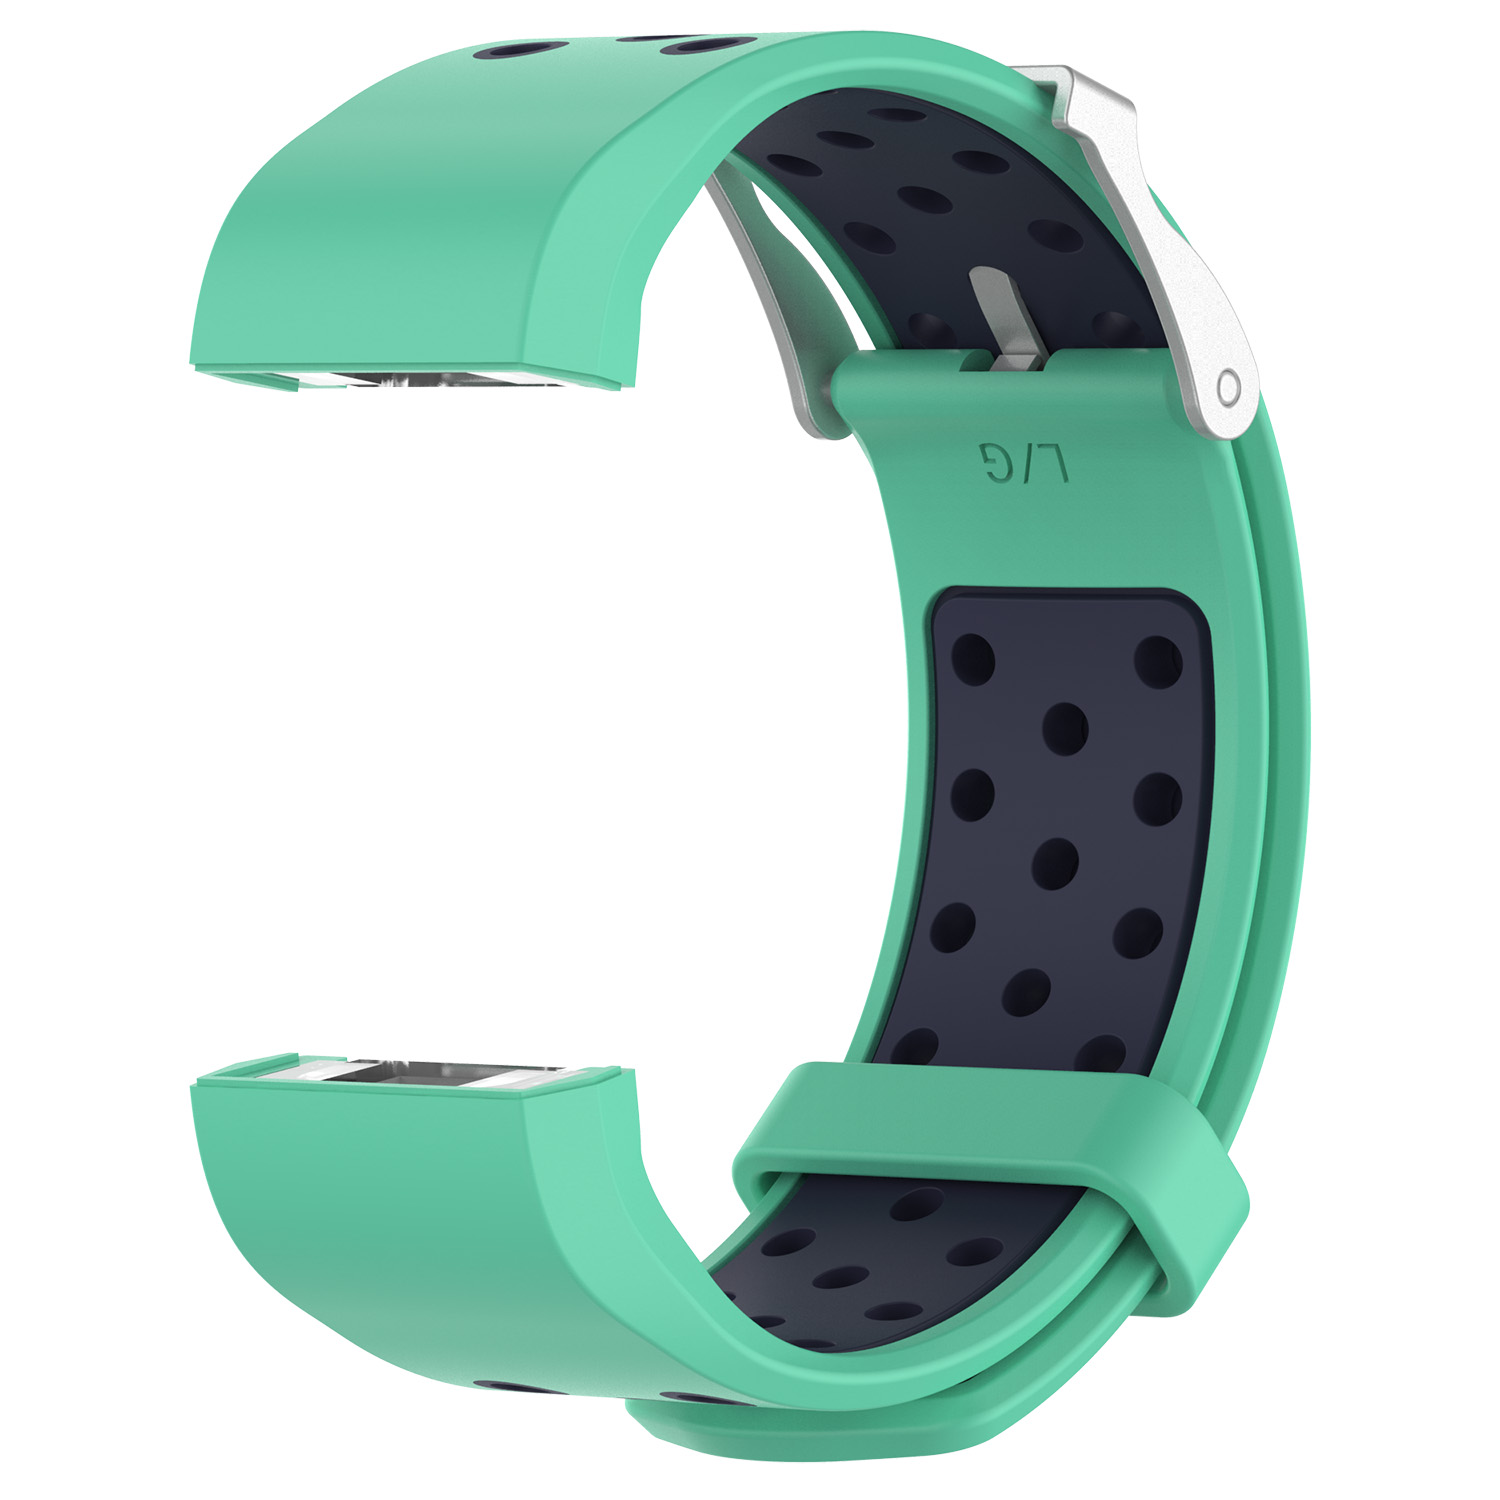 Replacement-Silicone-Wristband-Watch-Strap-Bands-Bracelet-For-Fitbit-Charge-2 thumbnail 96